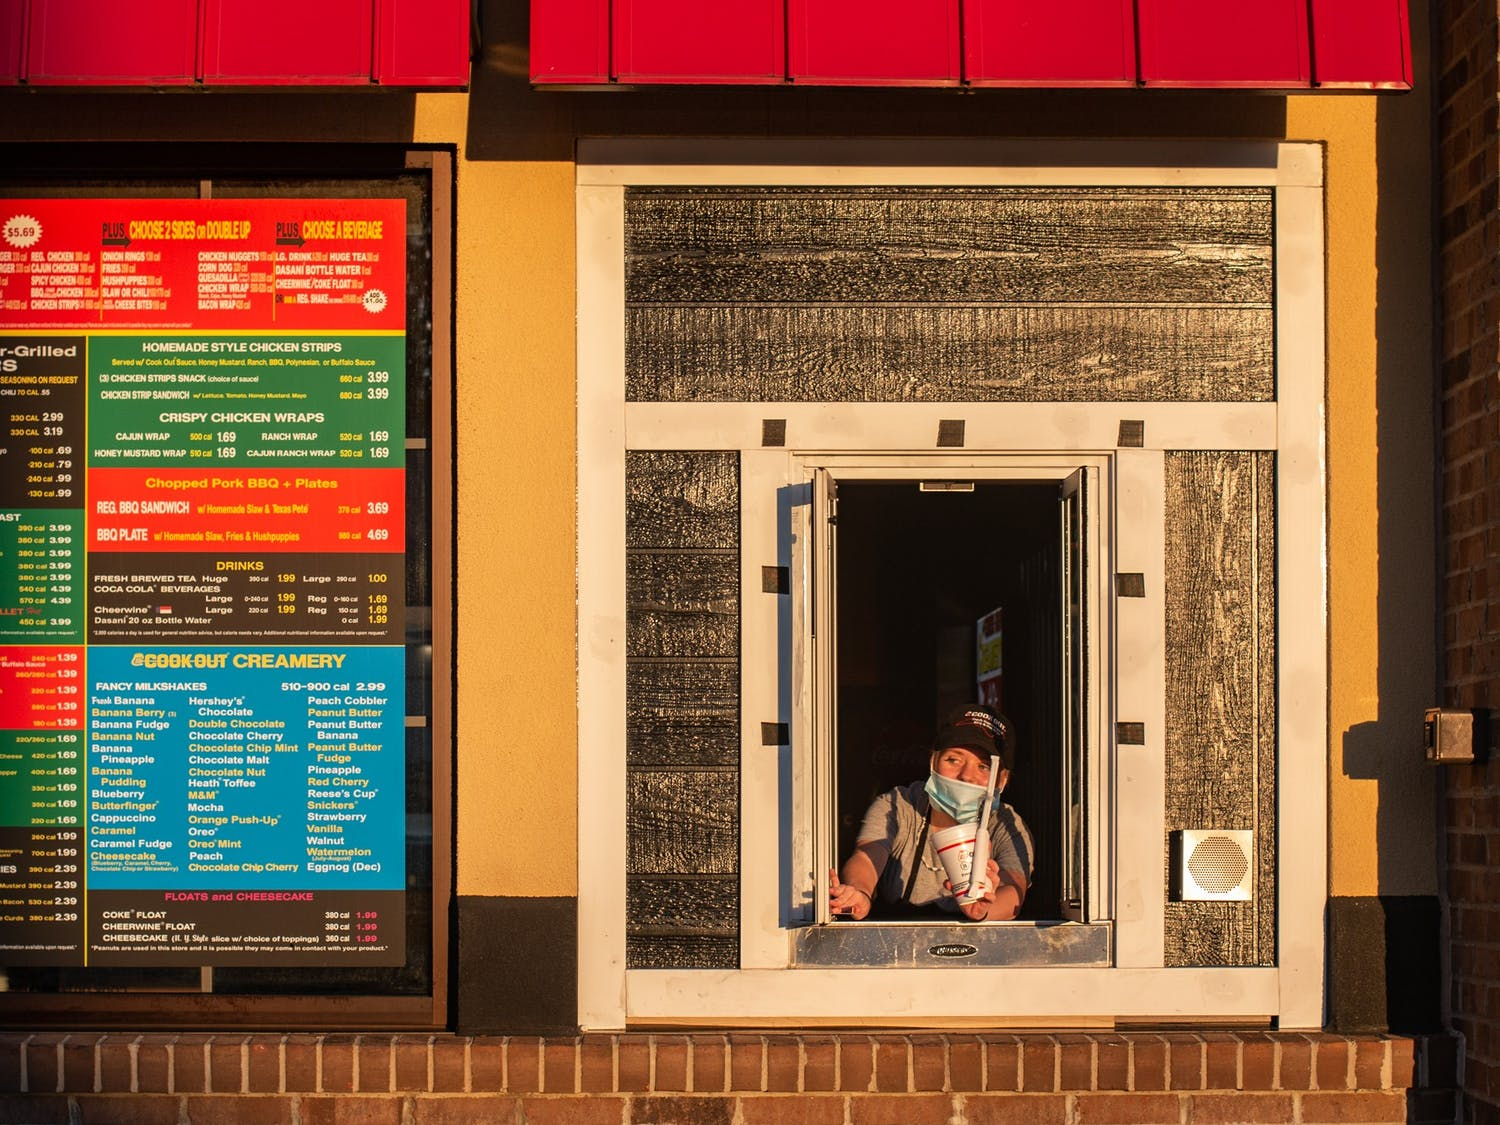 A Cookout employee hands a milkshake through the walk-up window of the Cookout in Wilkesboro, NC.